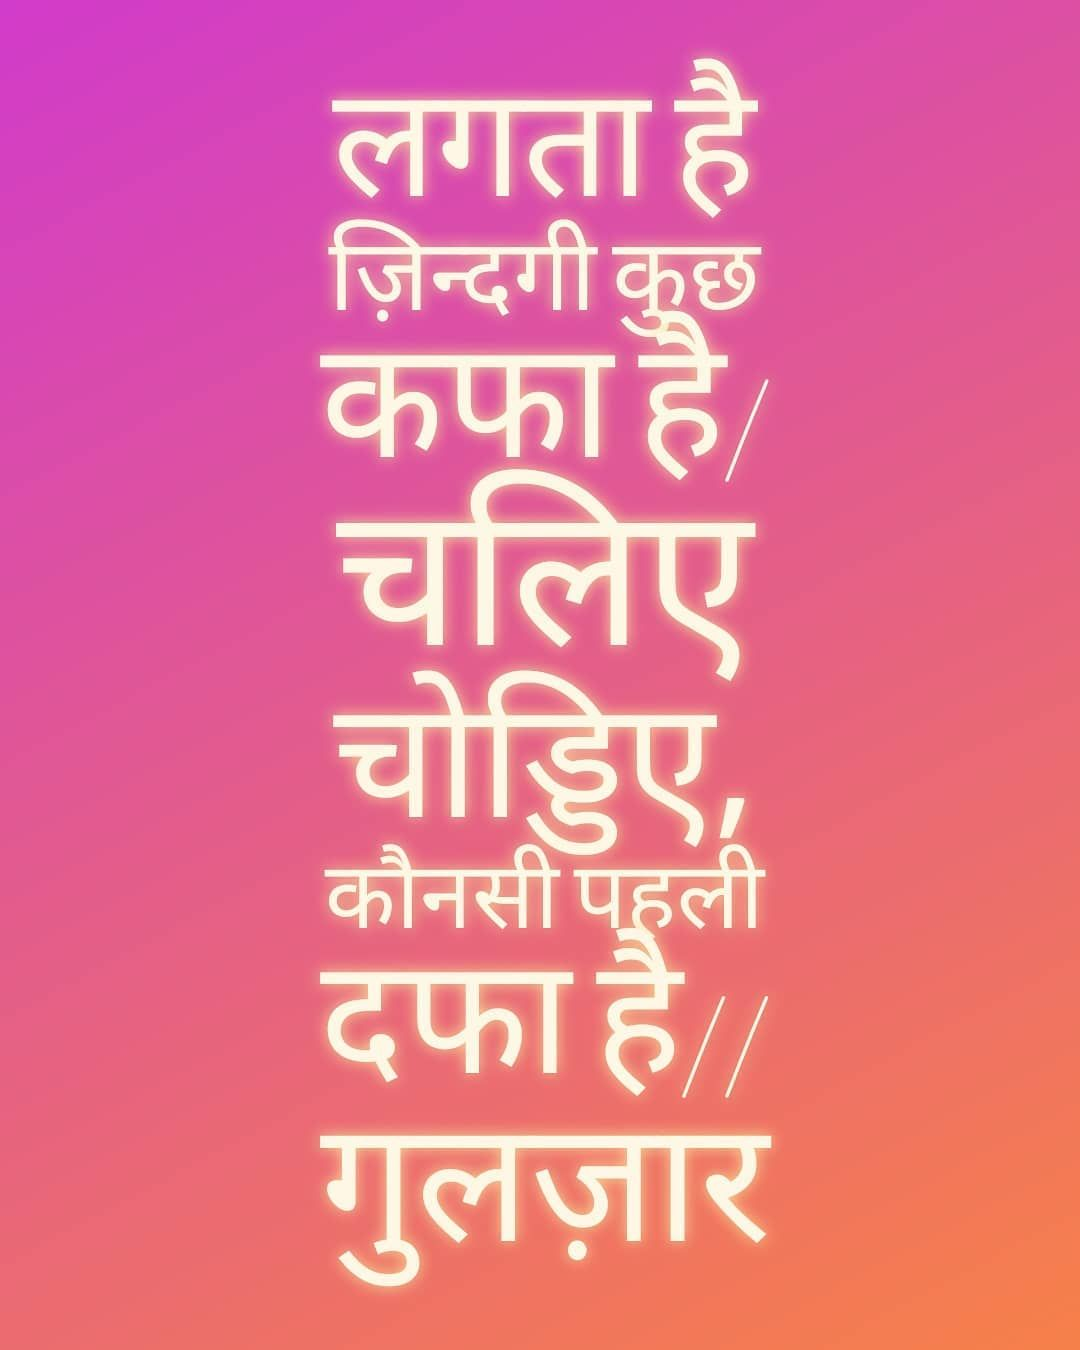 Hindi Quotes Image By Verma Insurance On Indian Quotes Eyes Quotes Soul Zindagi Quotes